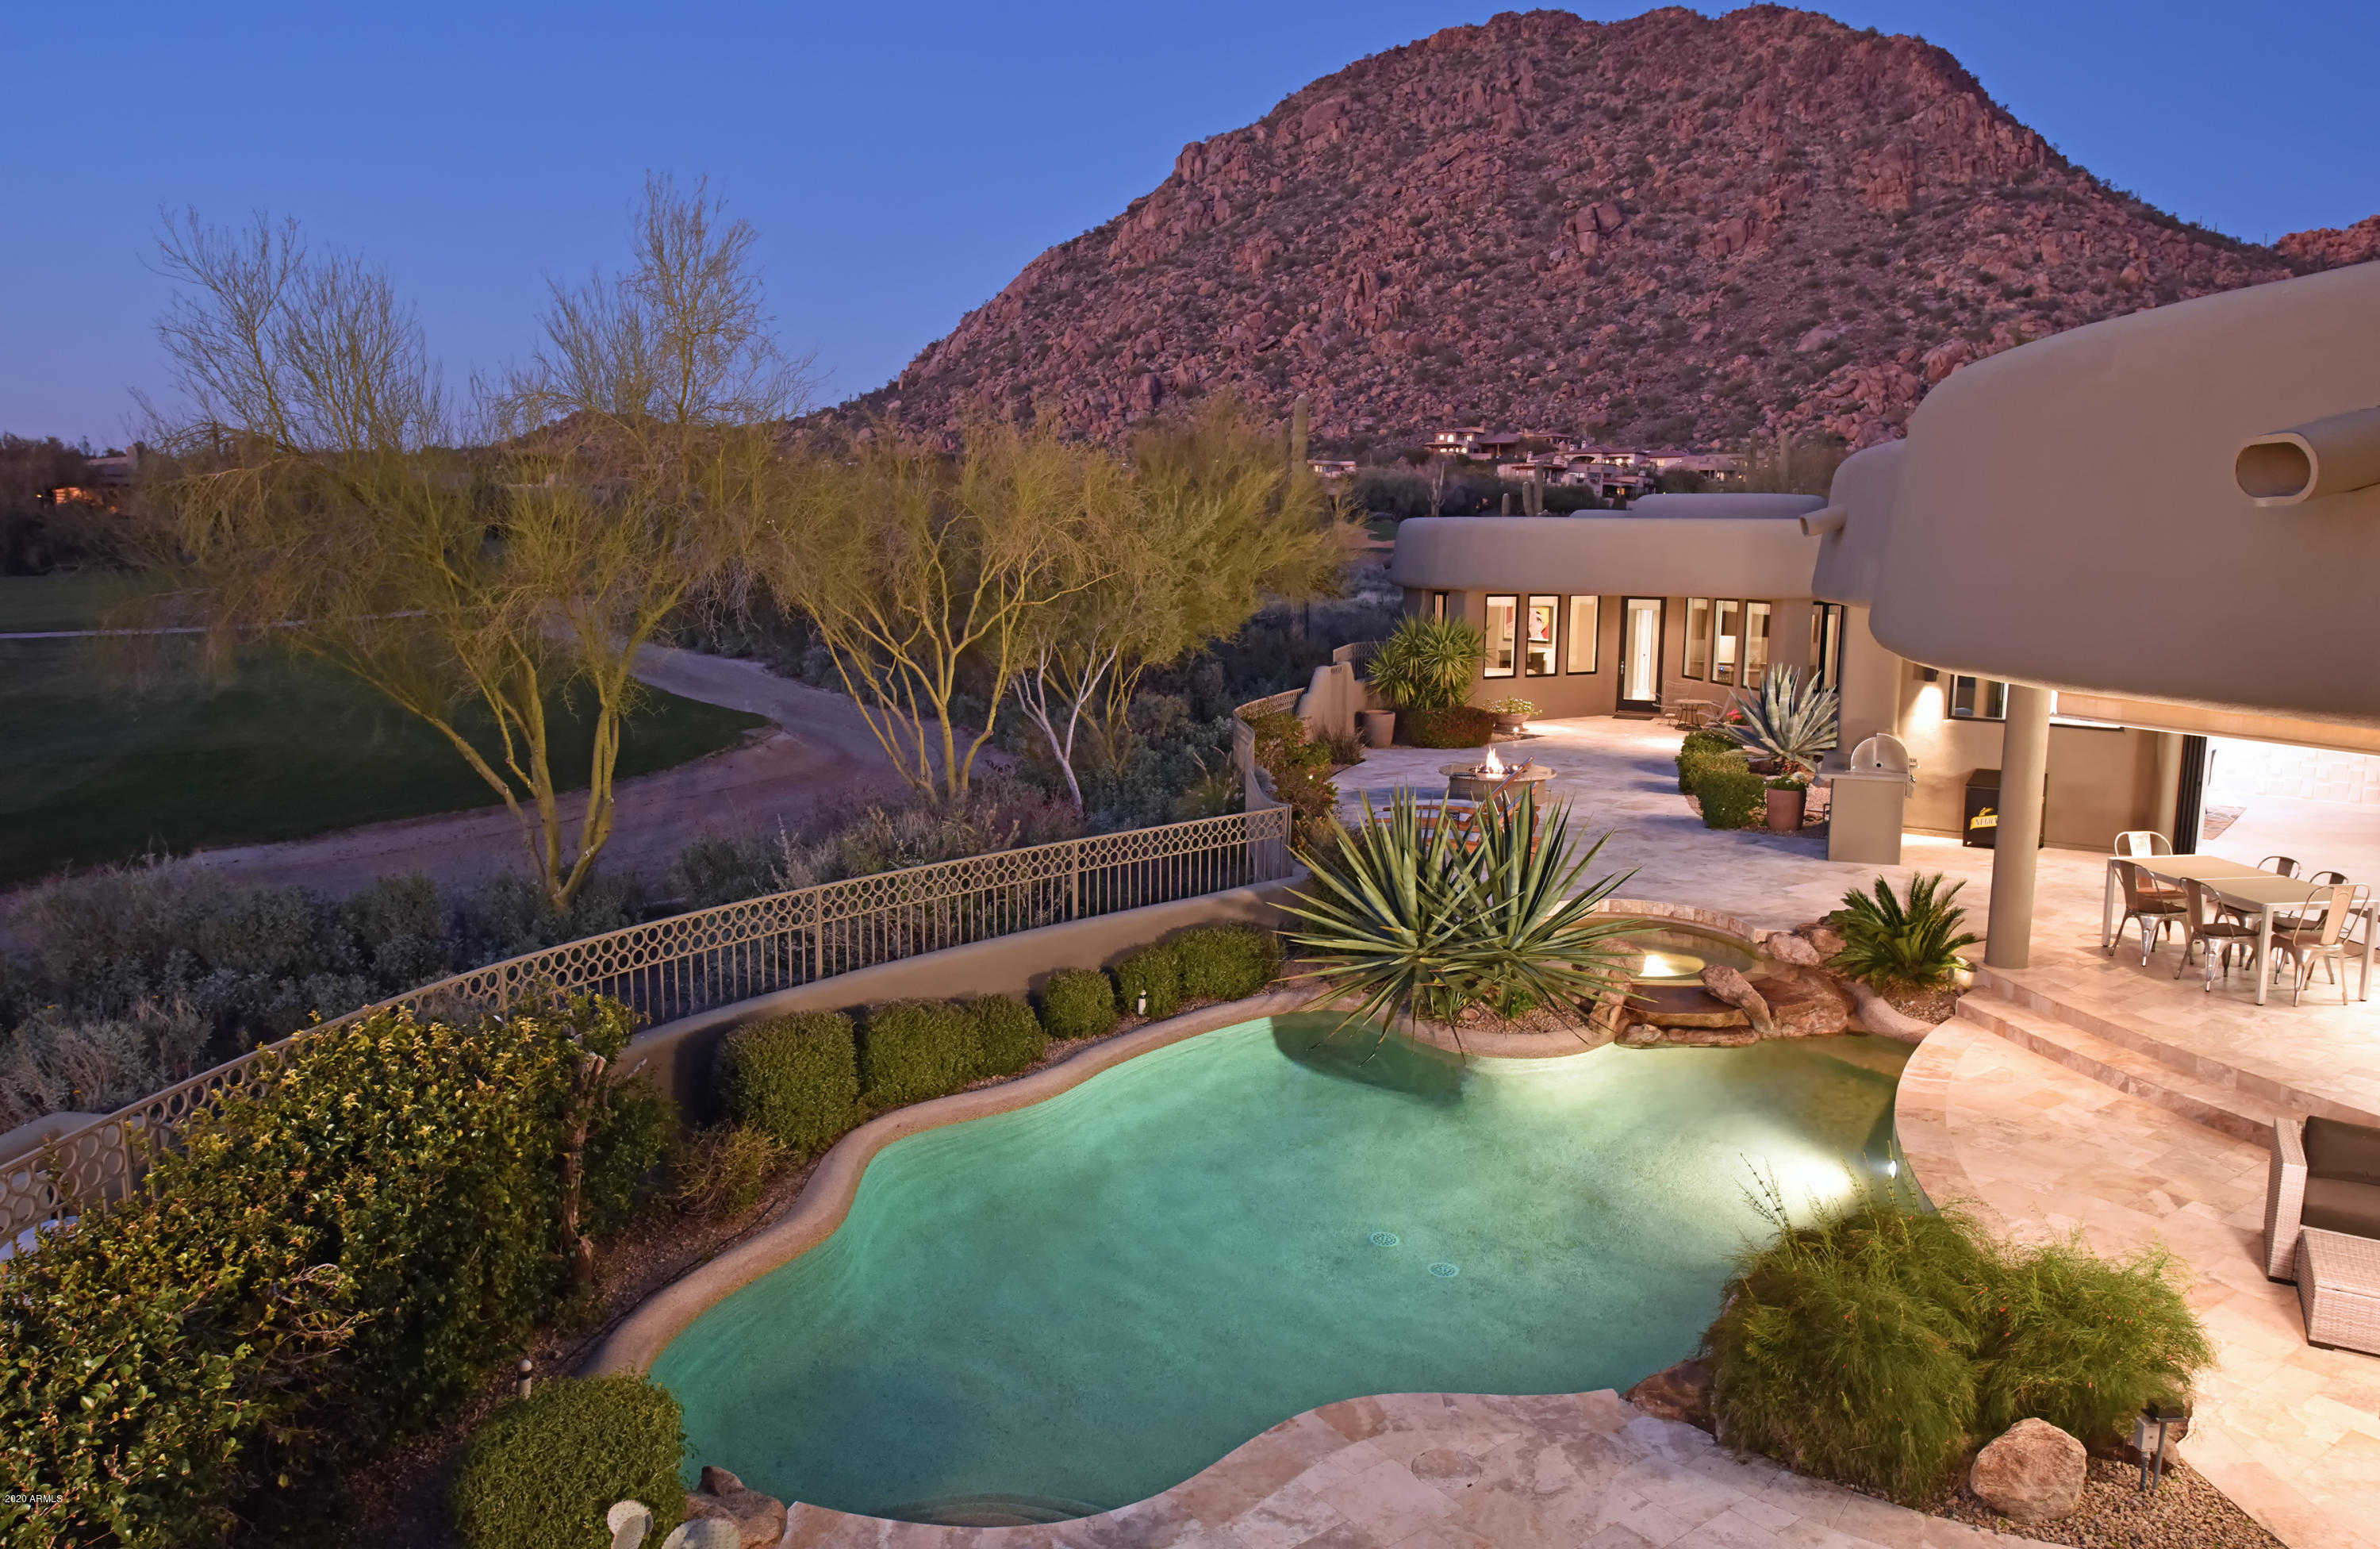 $1,999,500 - 4Br/5Ba - Home for Sale in Desert Highlands, Scottsdale